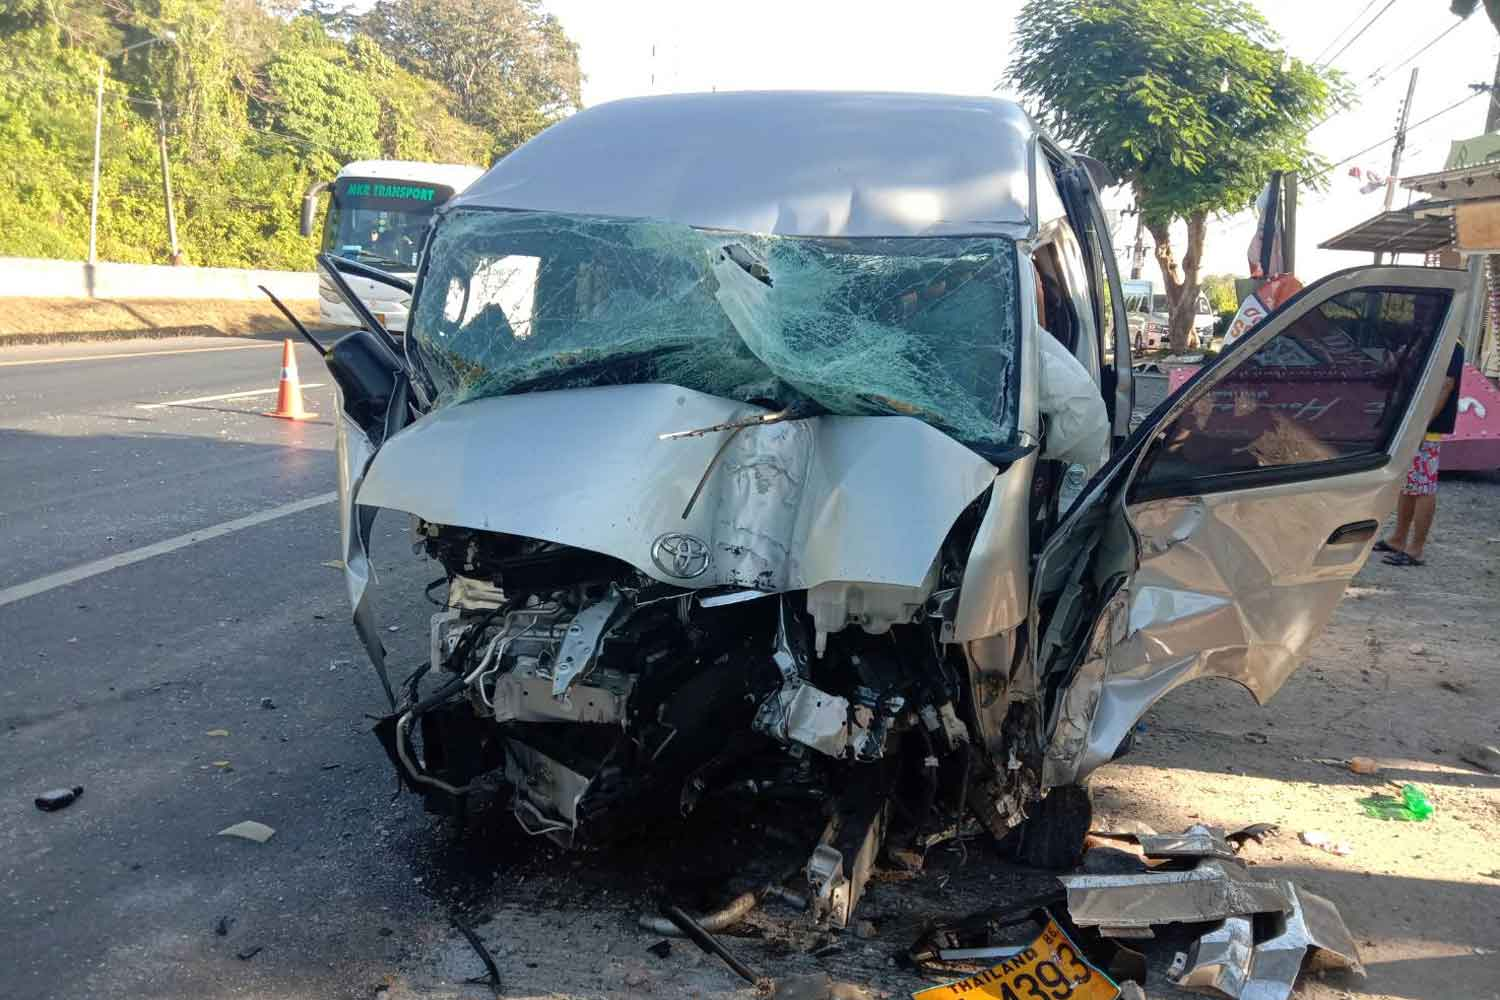 The wreackage of a van after it hit two roadside power poles on its way from Phuket airport to a local hotel in Phuket province on Monday morning. Its 23-year-old driver was seriously injured and believed to have dozed off. Three of five Chinese tourists he picked up were slightly hurt in the crash. (Photo by Achadtaya Chuennirun)